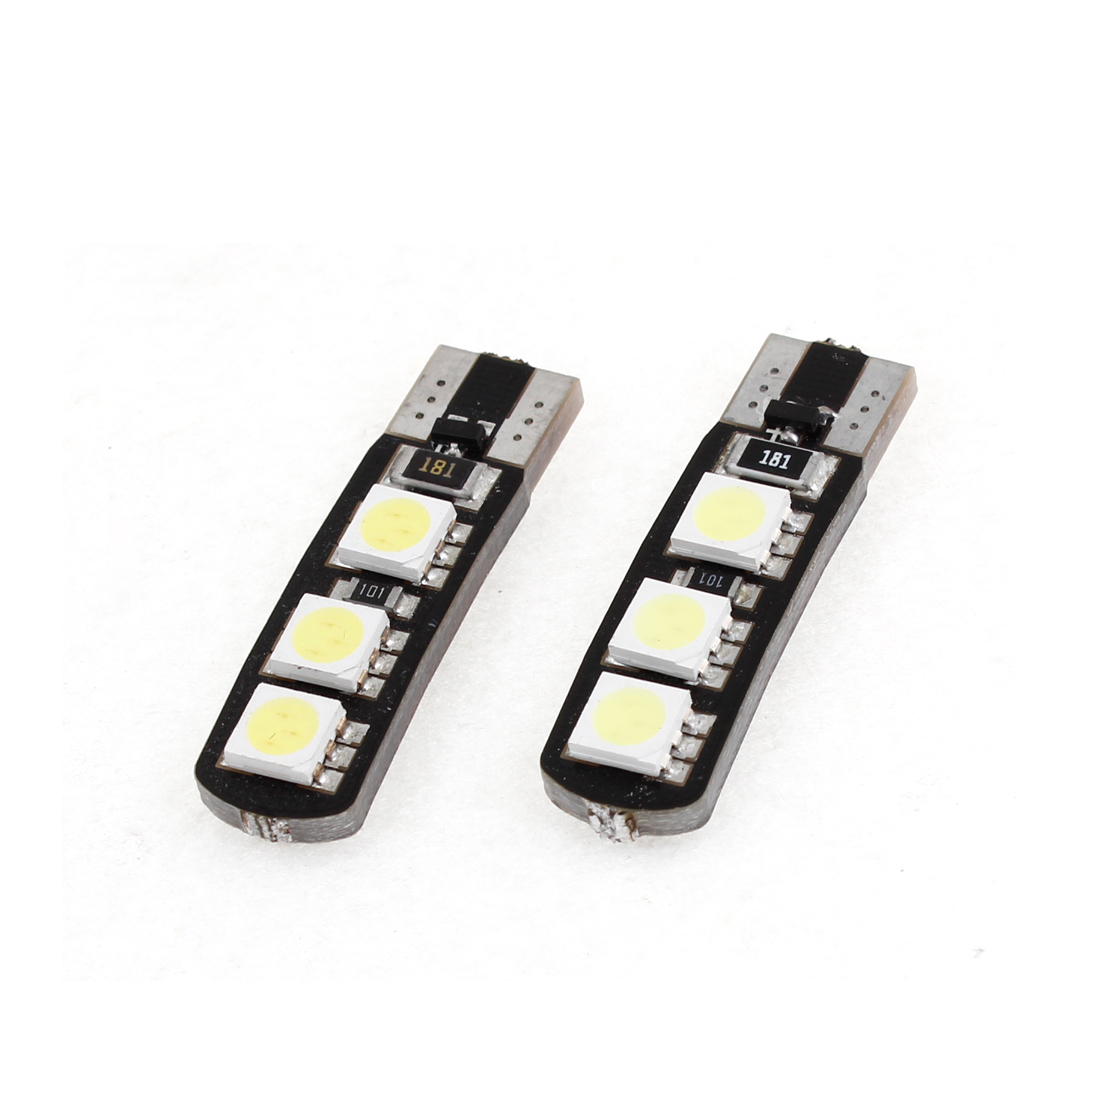 2 x No Error T10 White 6 LED 5050 SMD Dashboard License Plate Light Bulb for Car